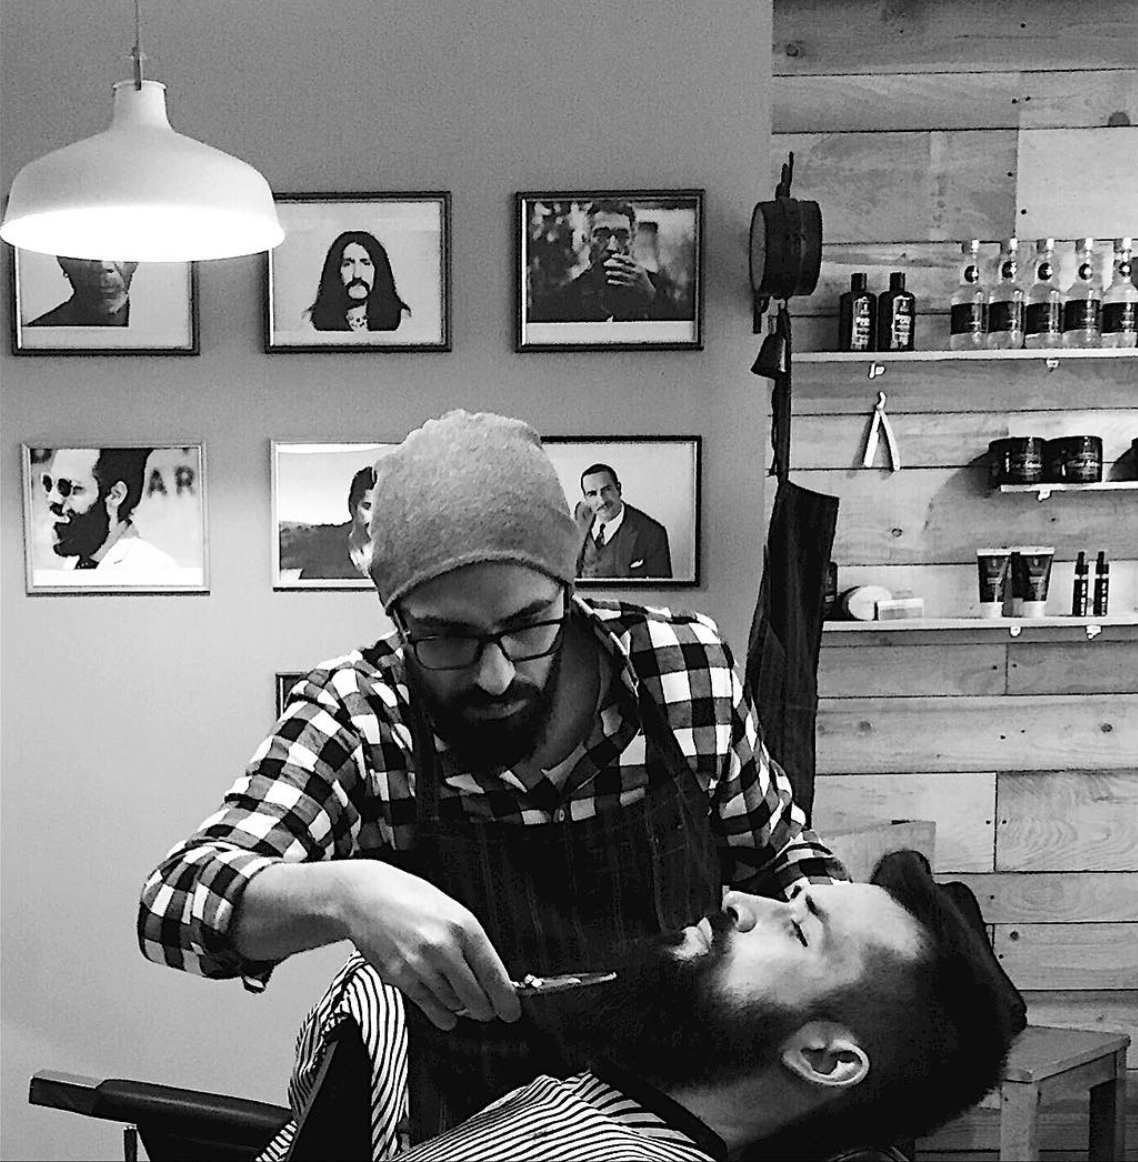 otantik barber shop saint etienne